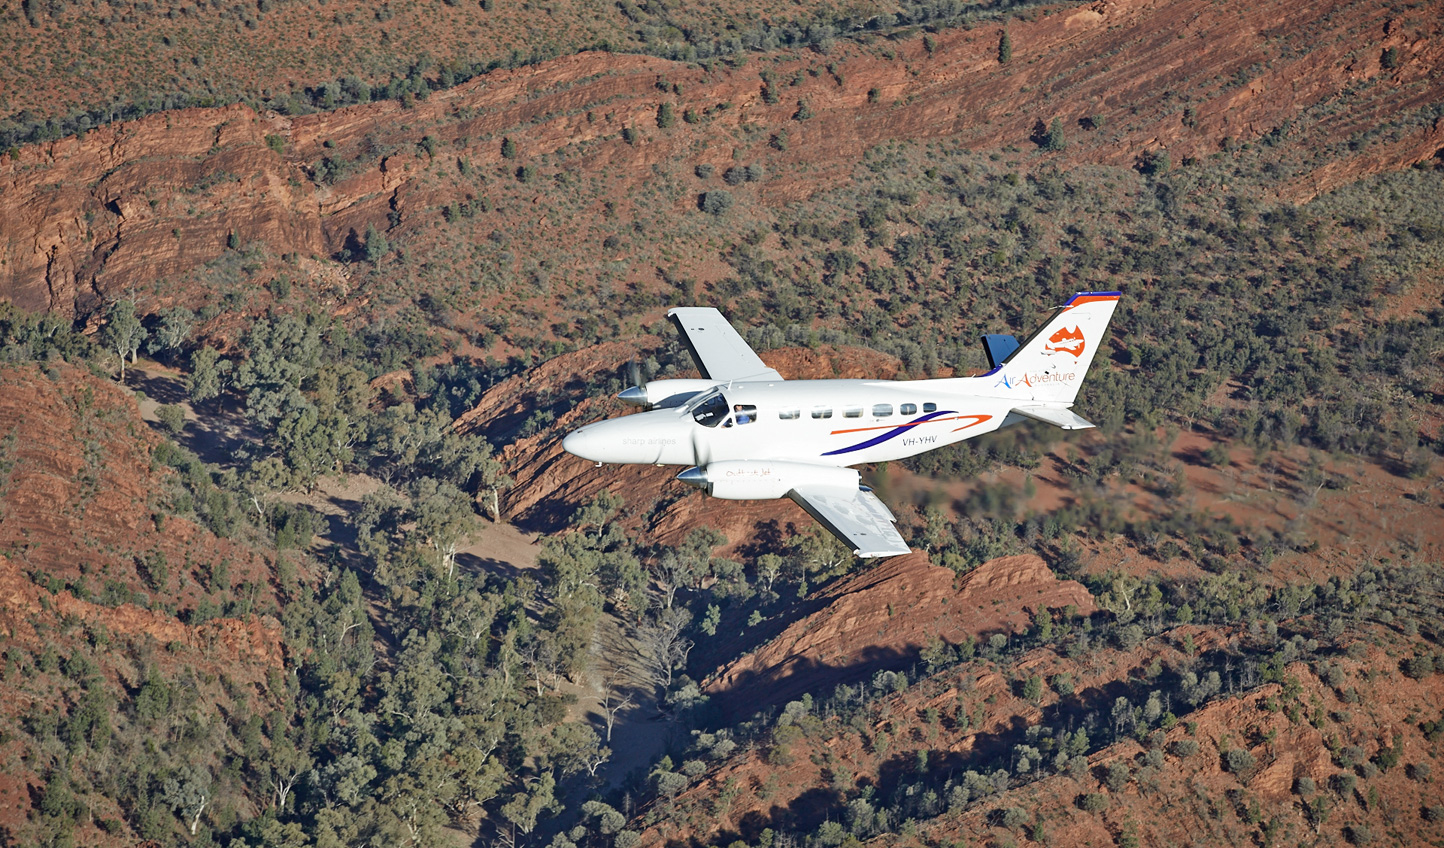 Soar above it all on a private scenic flight over Coonawarra